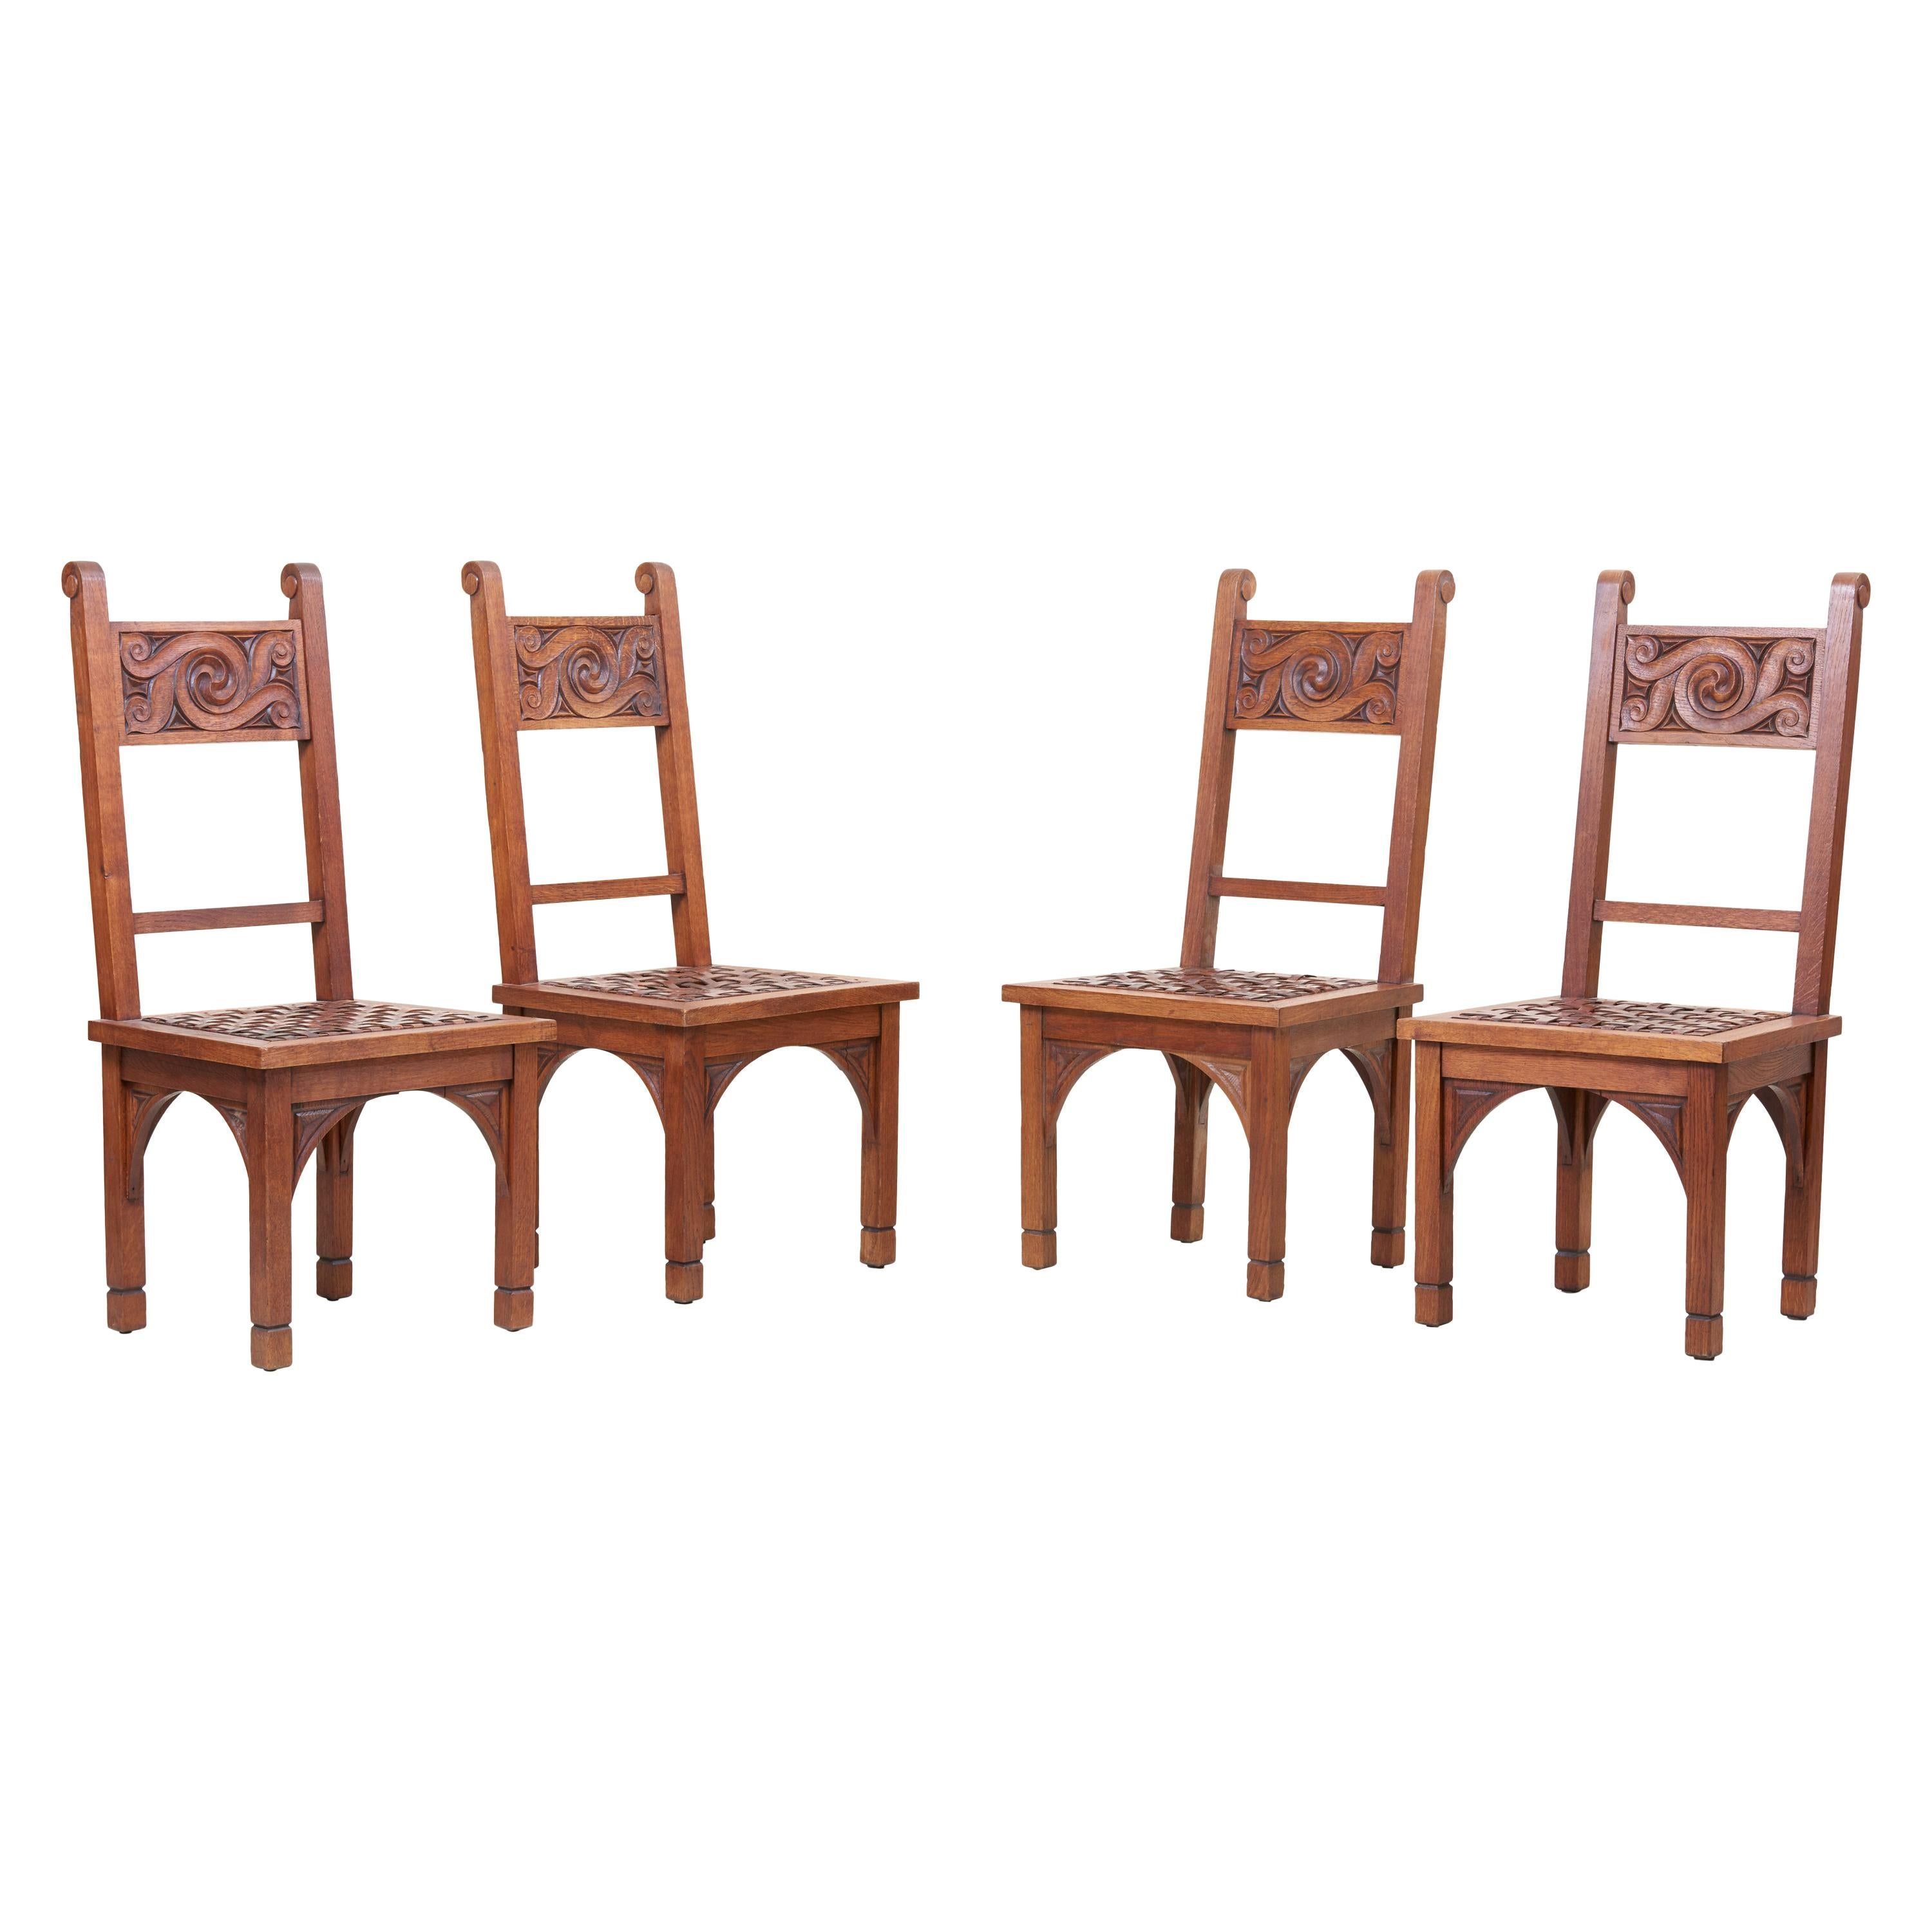 Set of Four Art Deco 1930s Dining Chairs by M. Jacques Philippe, France